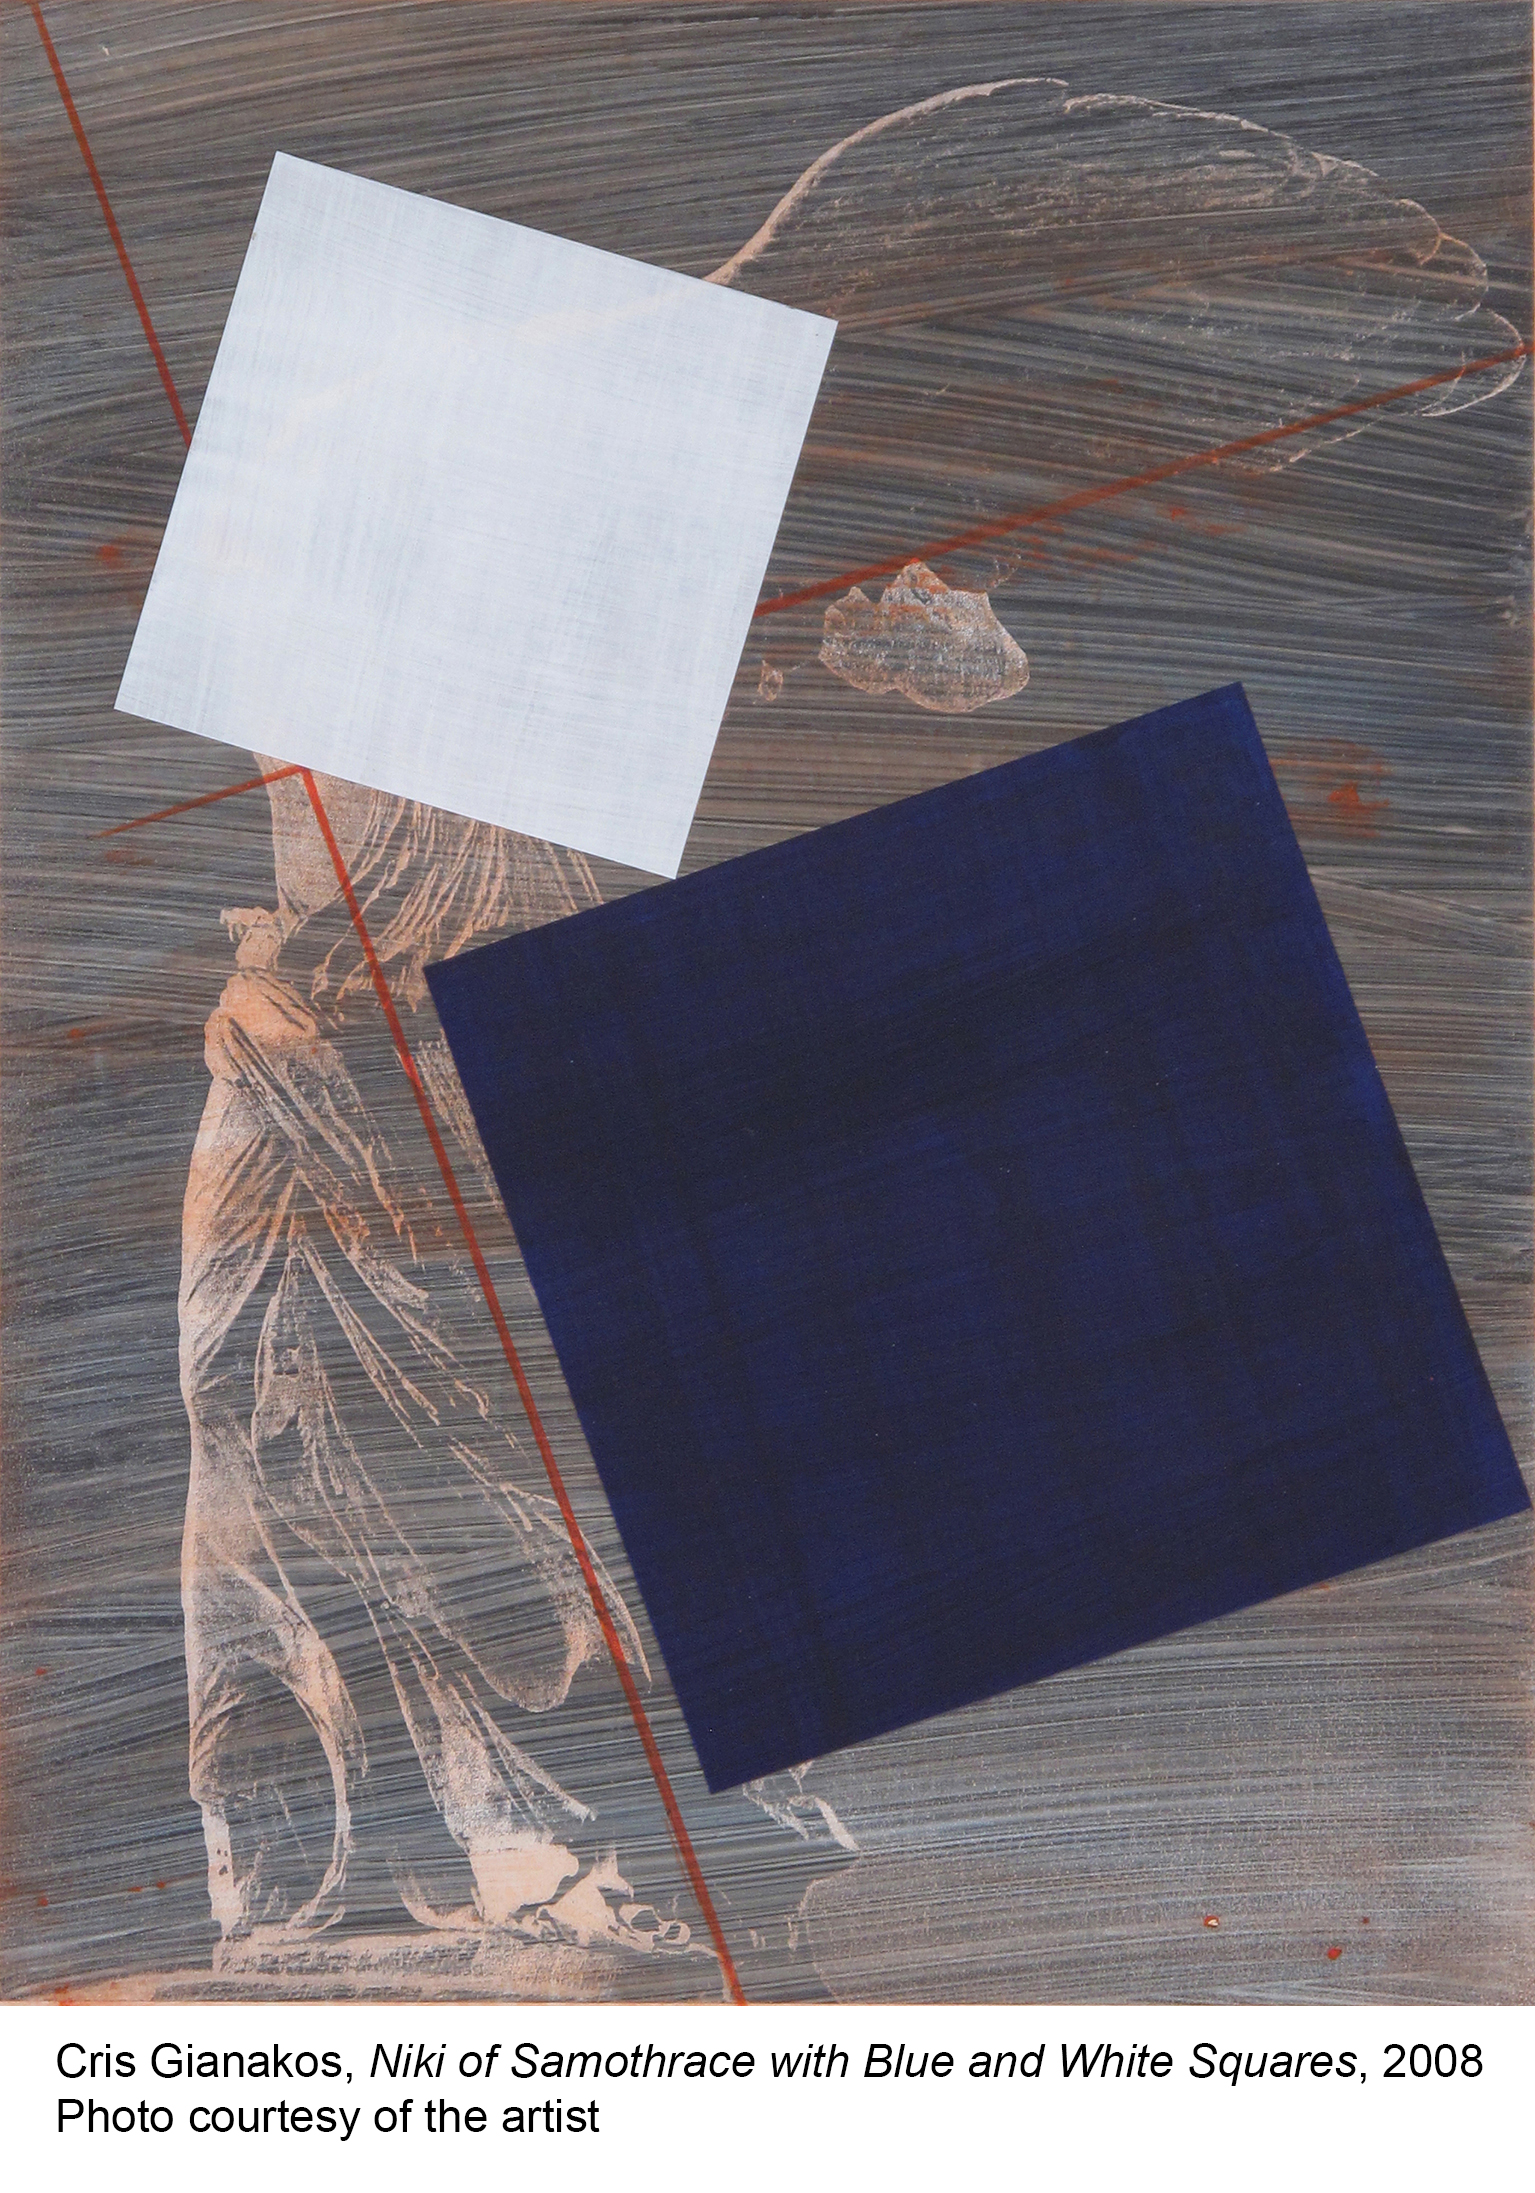 01-Gianakos_Cris_ Niki of Samothrace with Blue + White Squares_2008_title.jpg